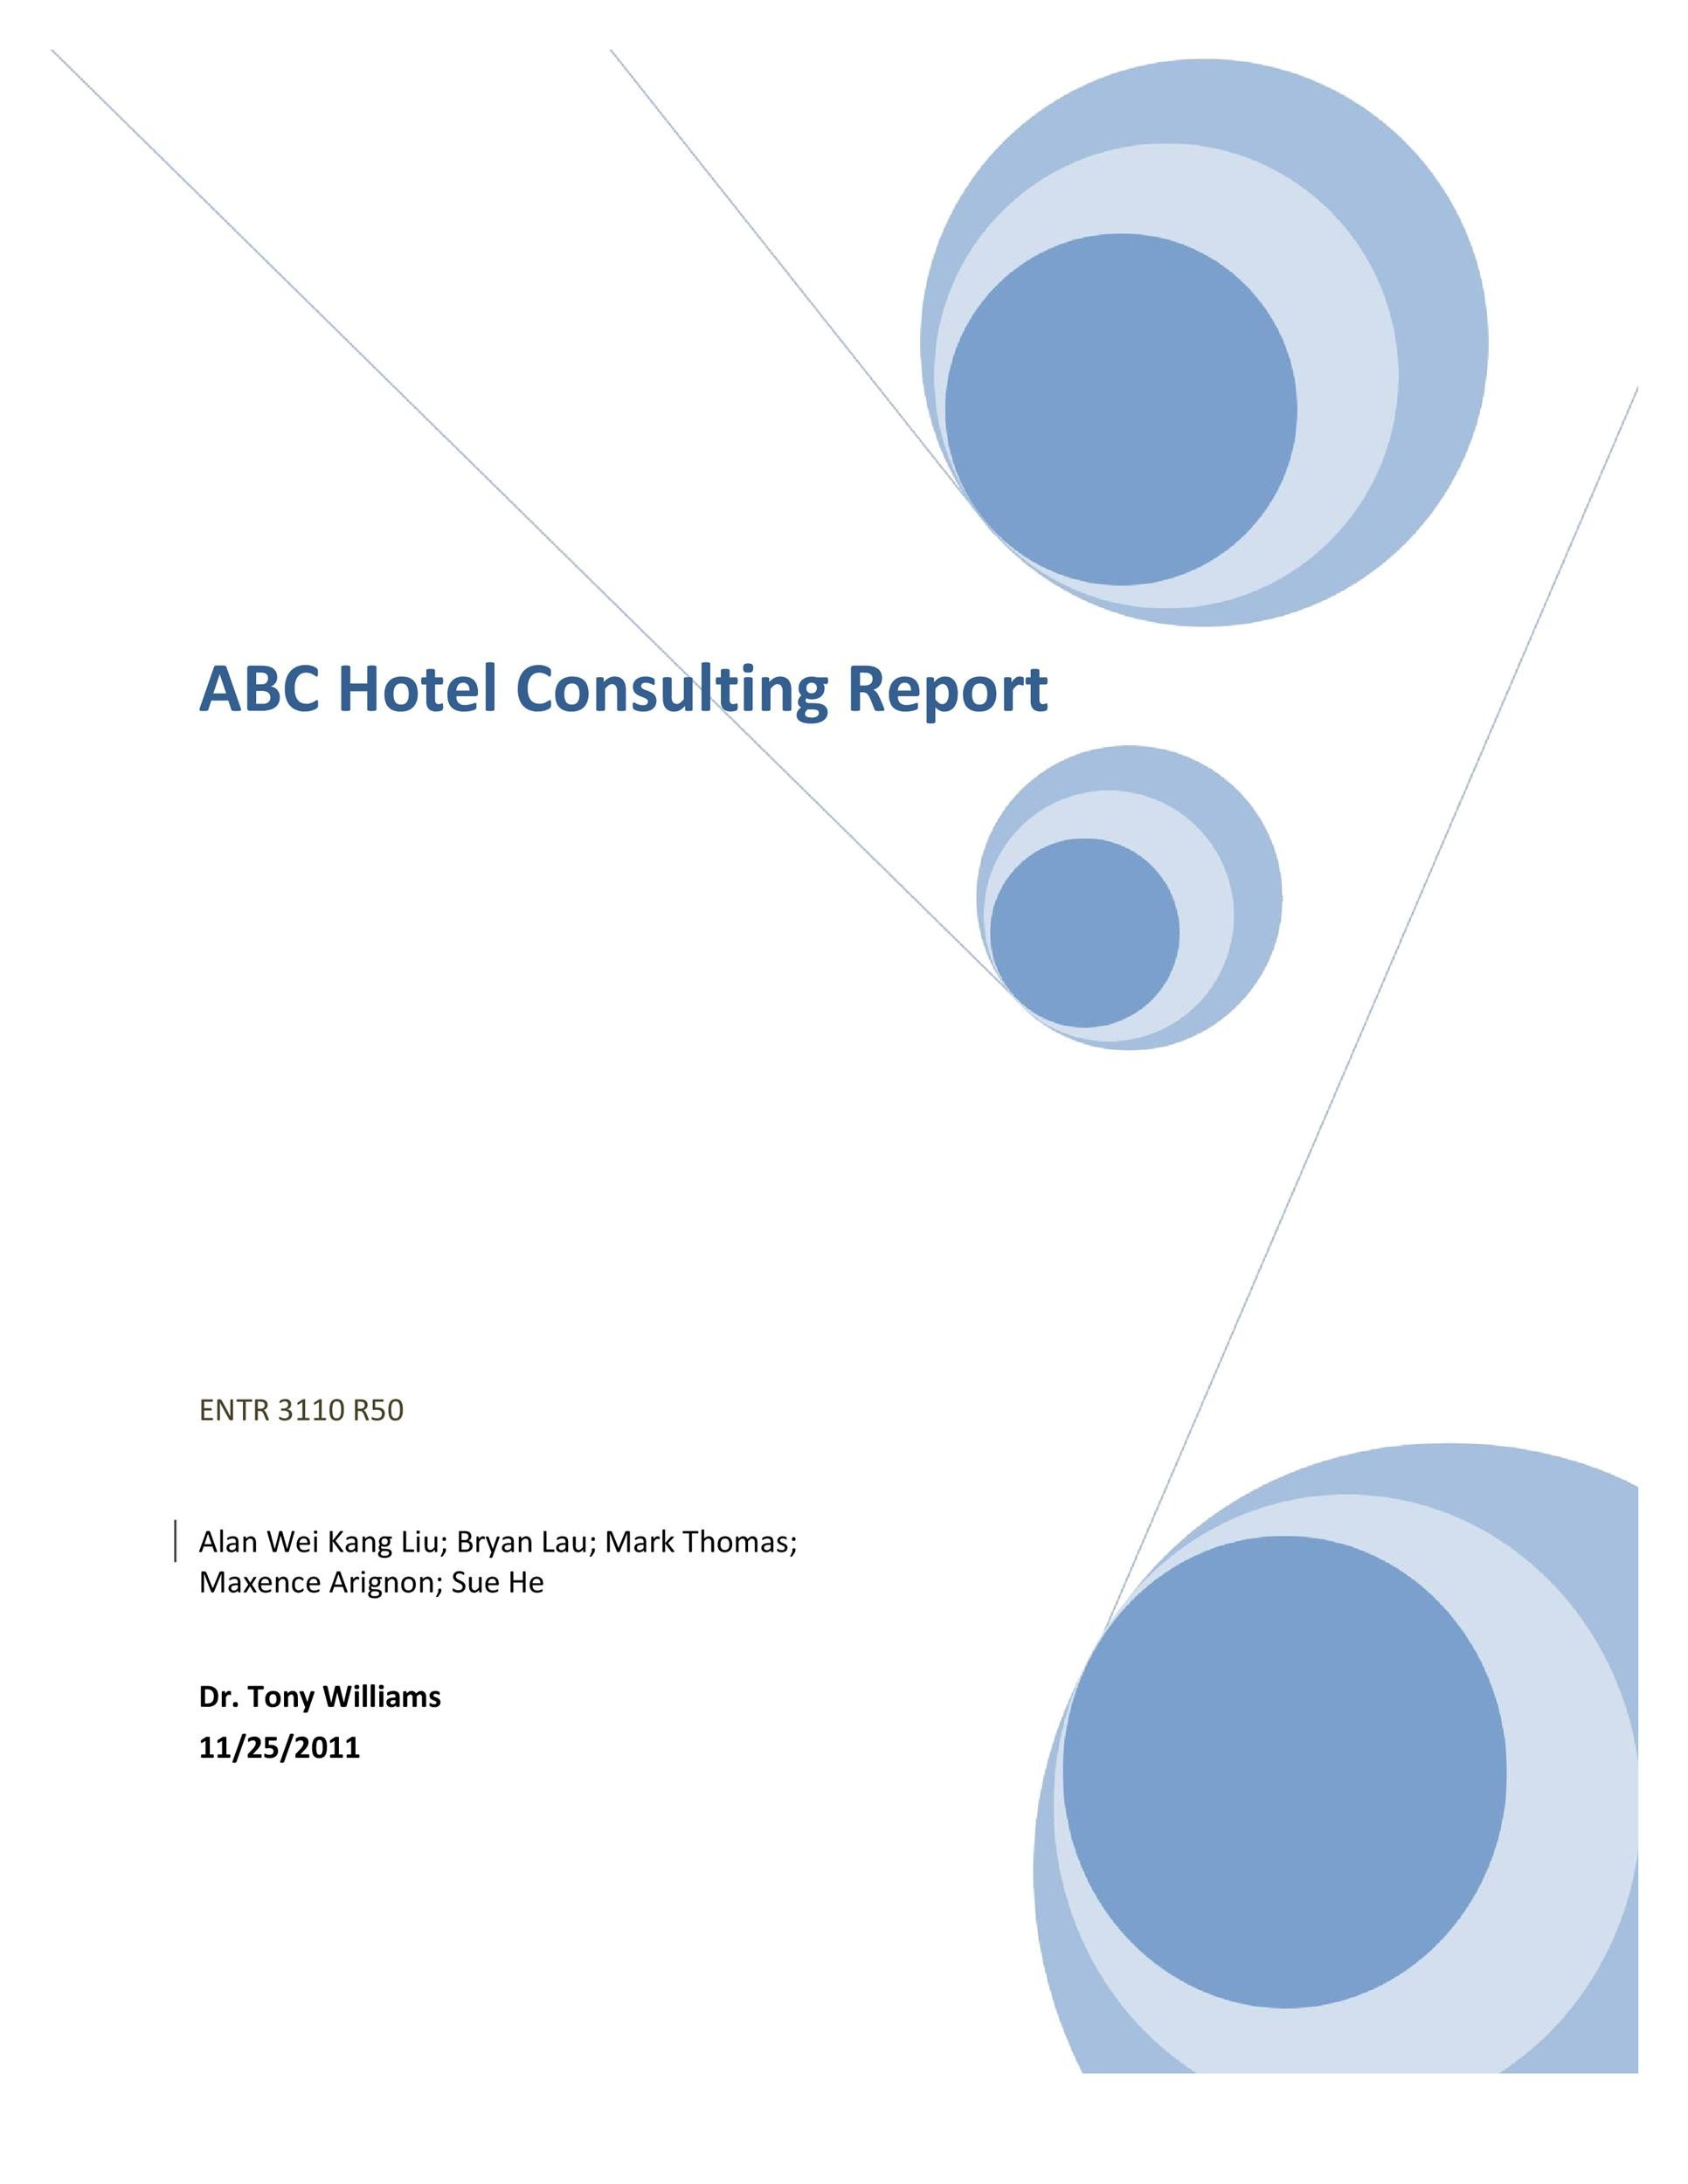 Free consulting report template 03